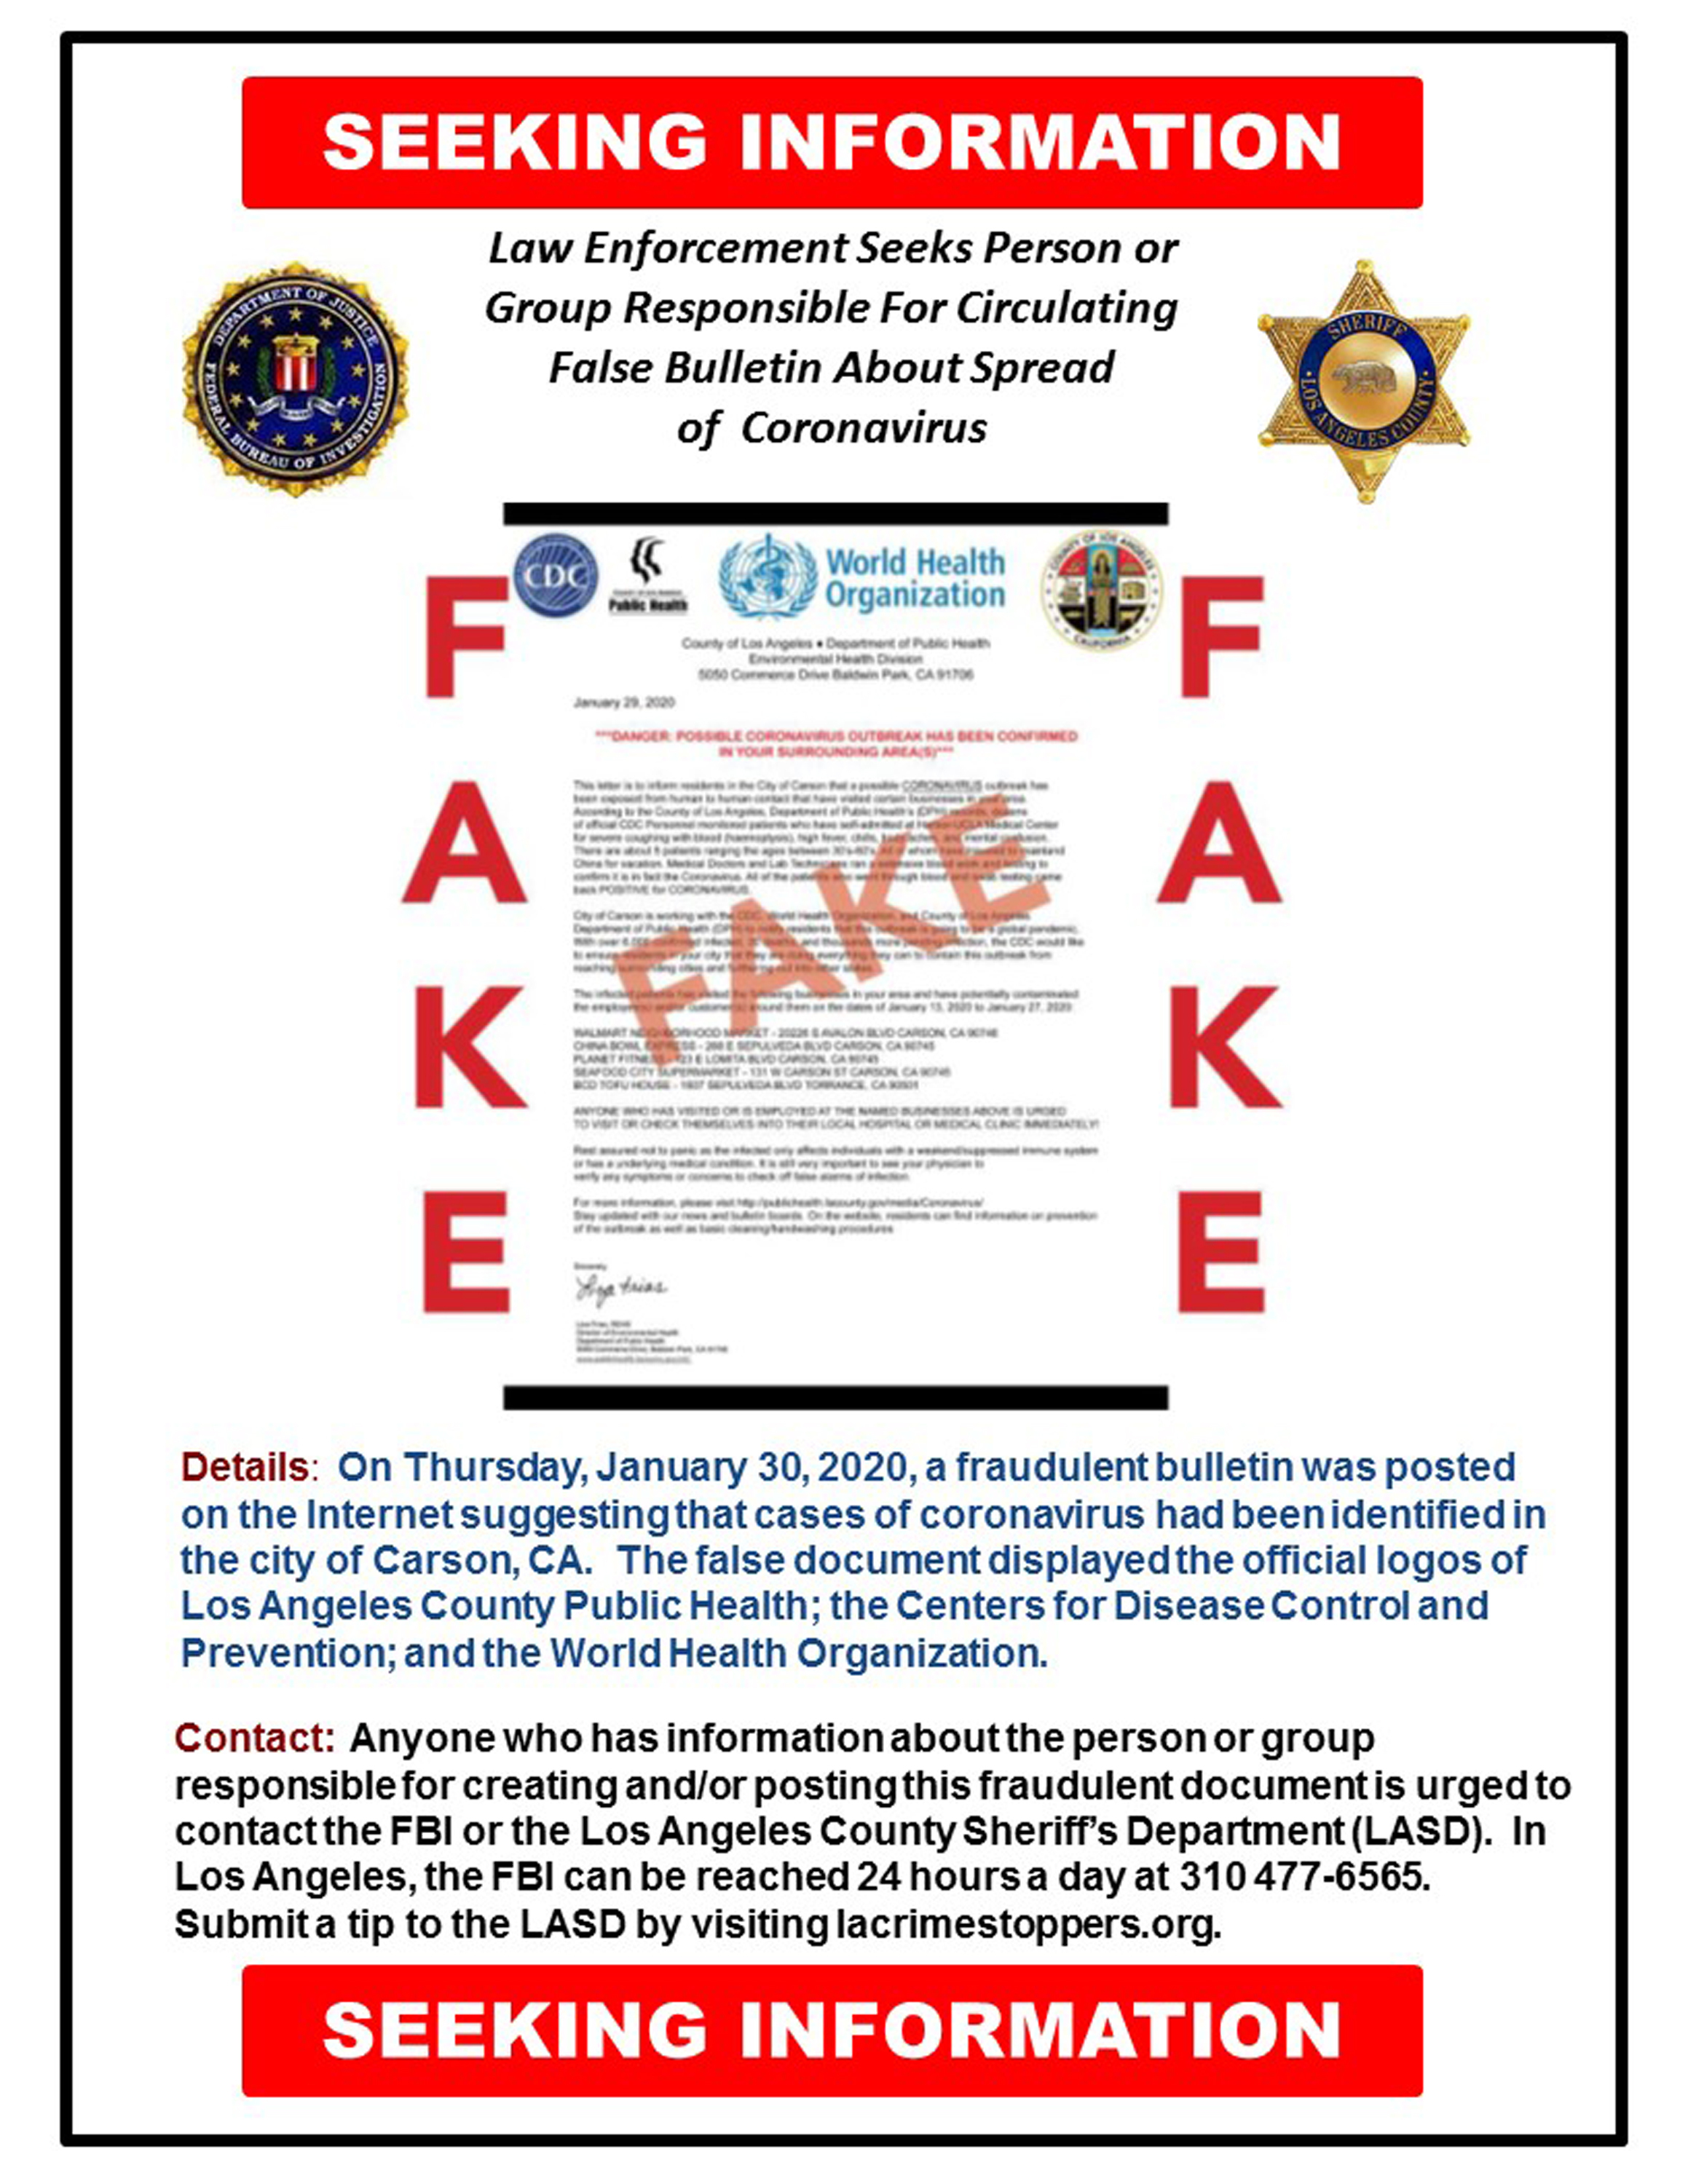 This image posted on the FBI Twitter page, on Tuesday, Feb. 11, 2020, shows a fake document that was posted online, that the FBI and Los Angeles County Sheriff's Department are investigating. The realistic-looking document, asserting the novel coronavirus was detected in the city of Carson, Calif, had the official logos of Los Angeles County Public Health, the Centers for Disease Control and Prevention and the World Health Organization, and has been strongly denounced by local officials. (FBI via AP)  (FBI via AP)